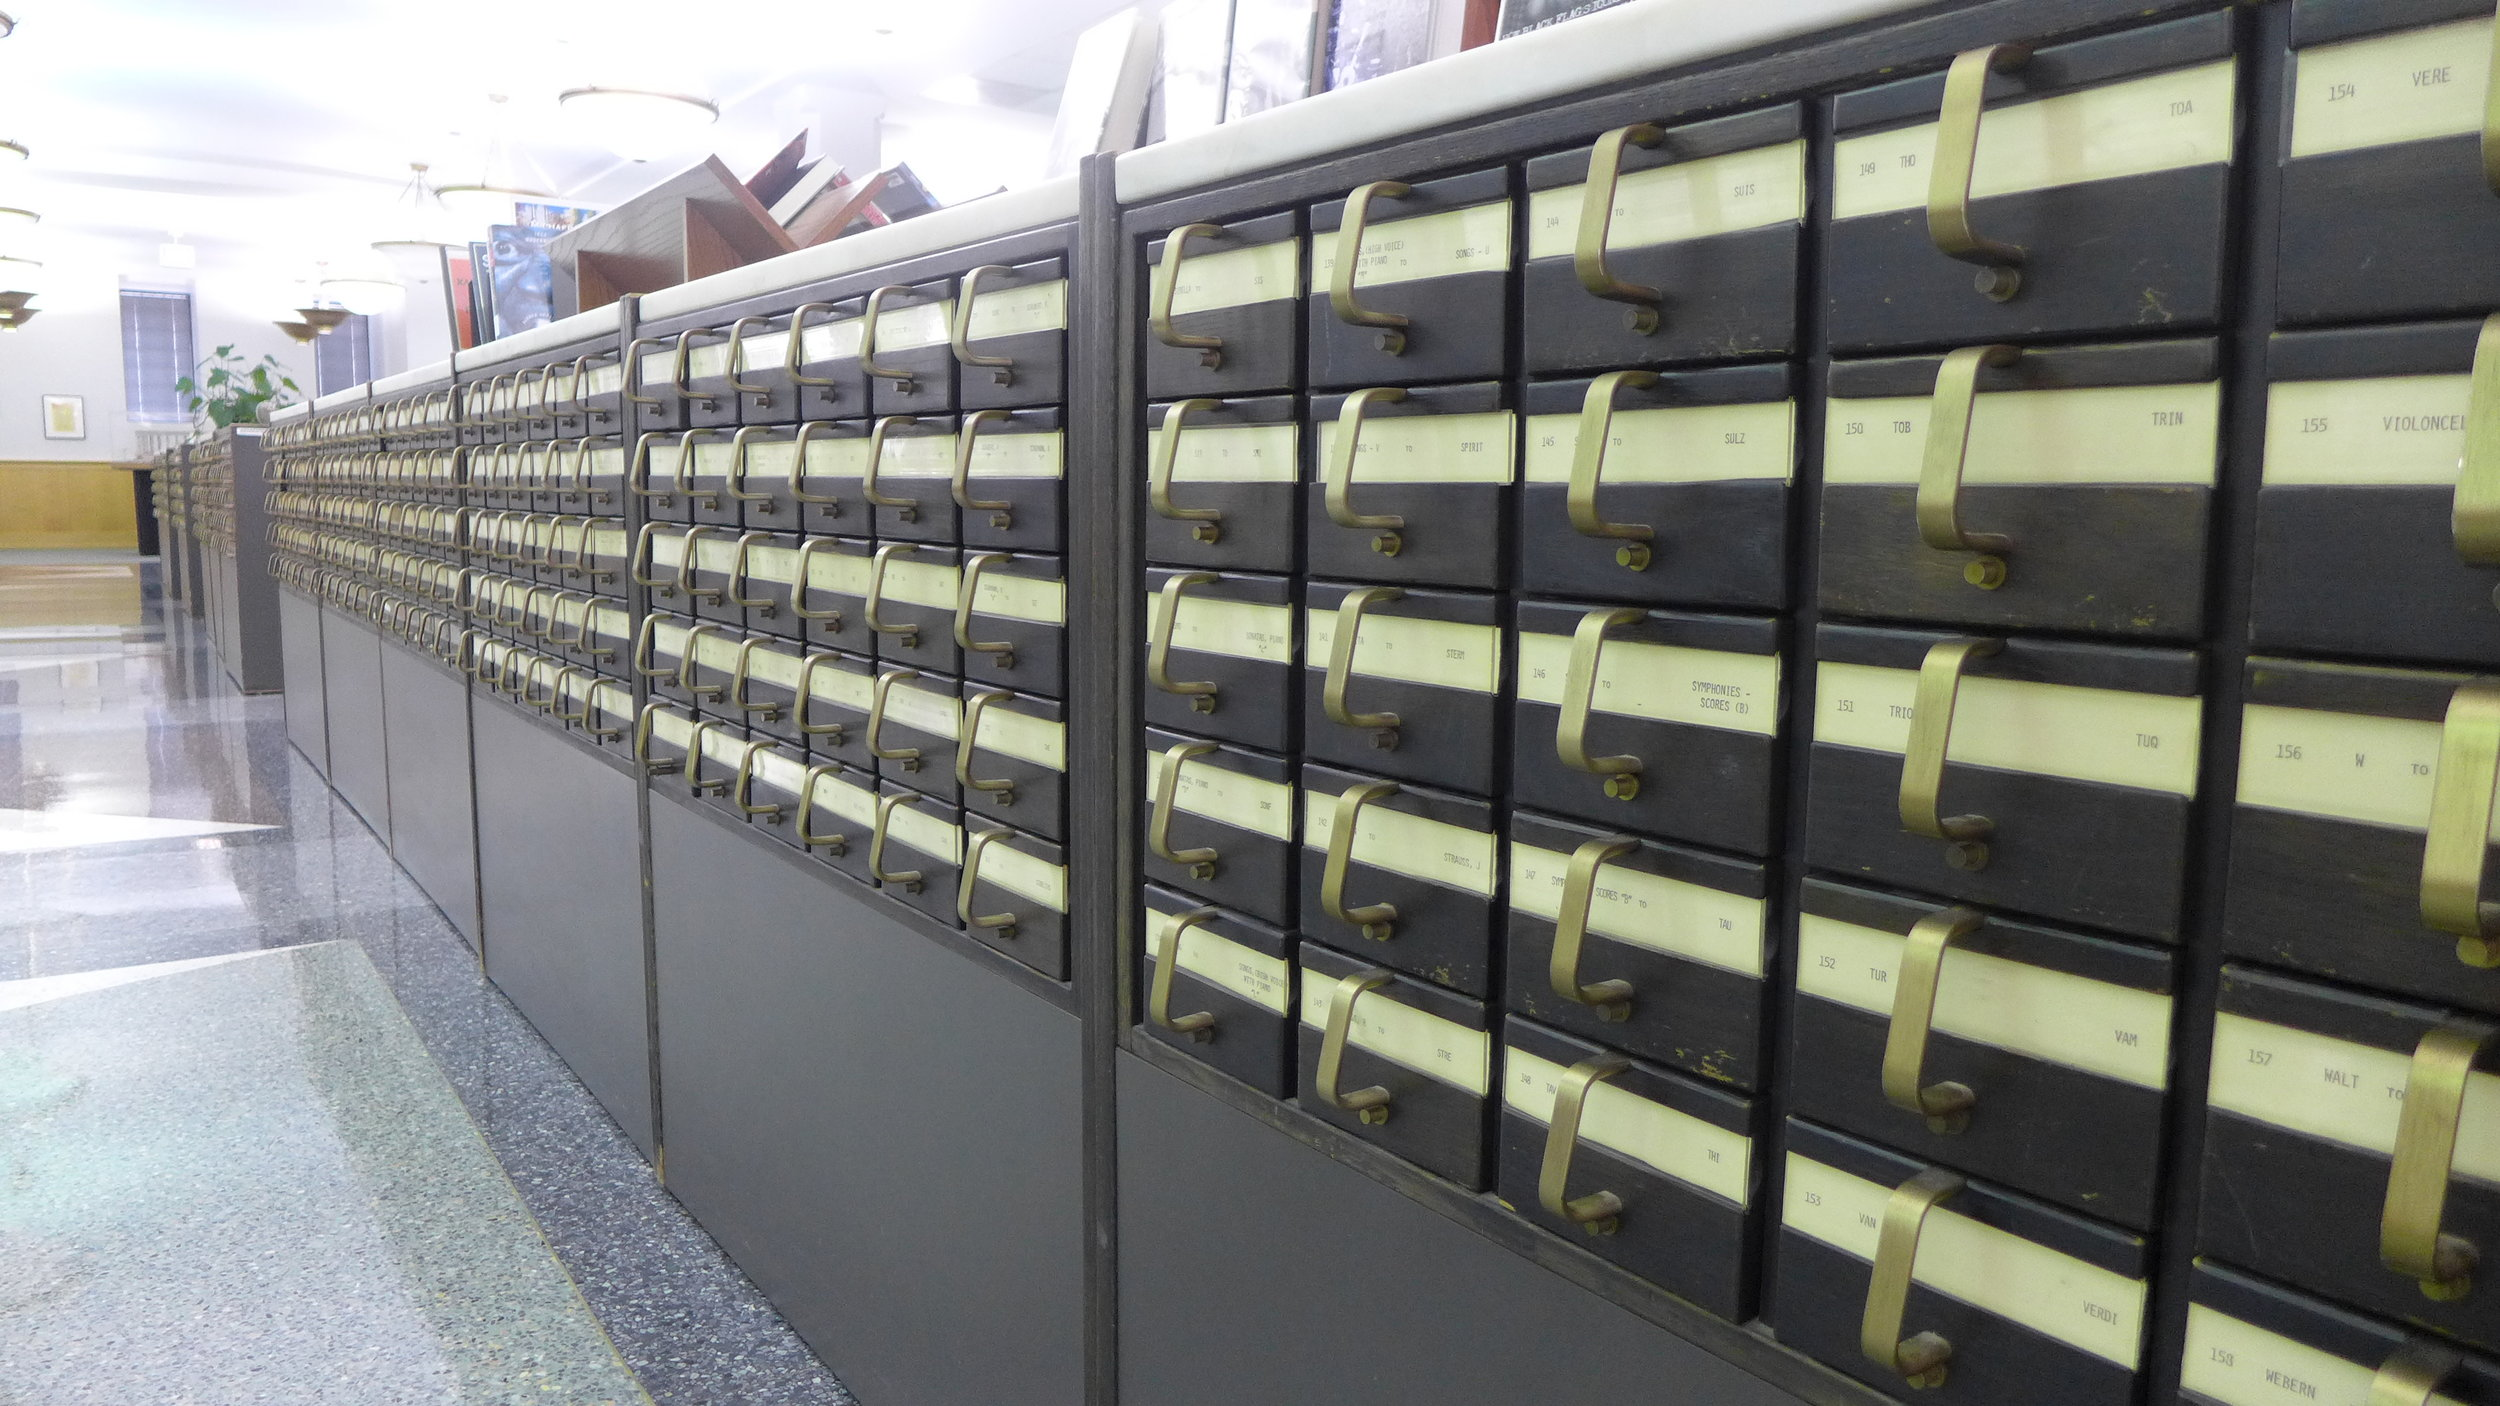 Card catalogs at The Chicago Public Library